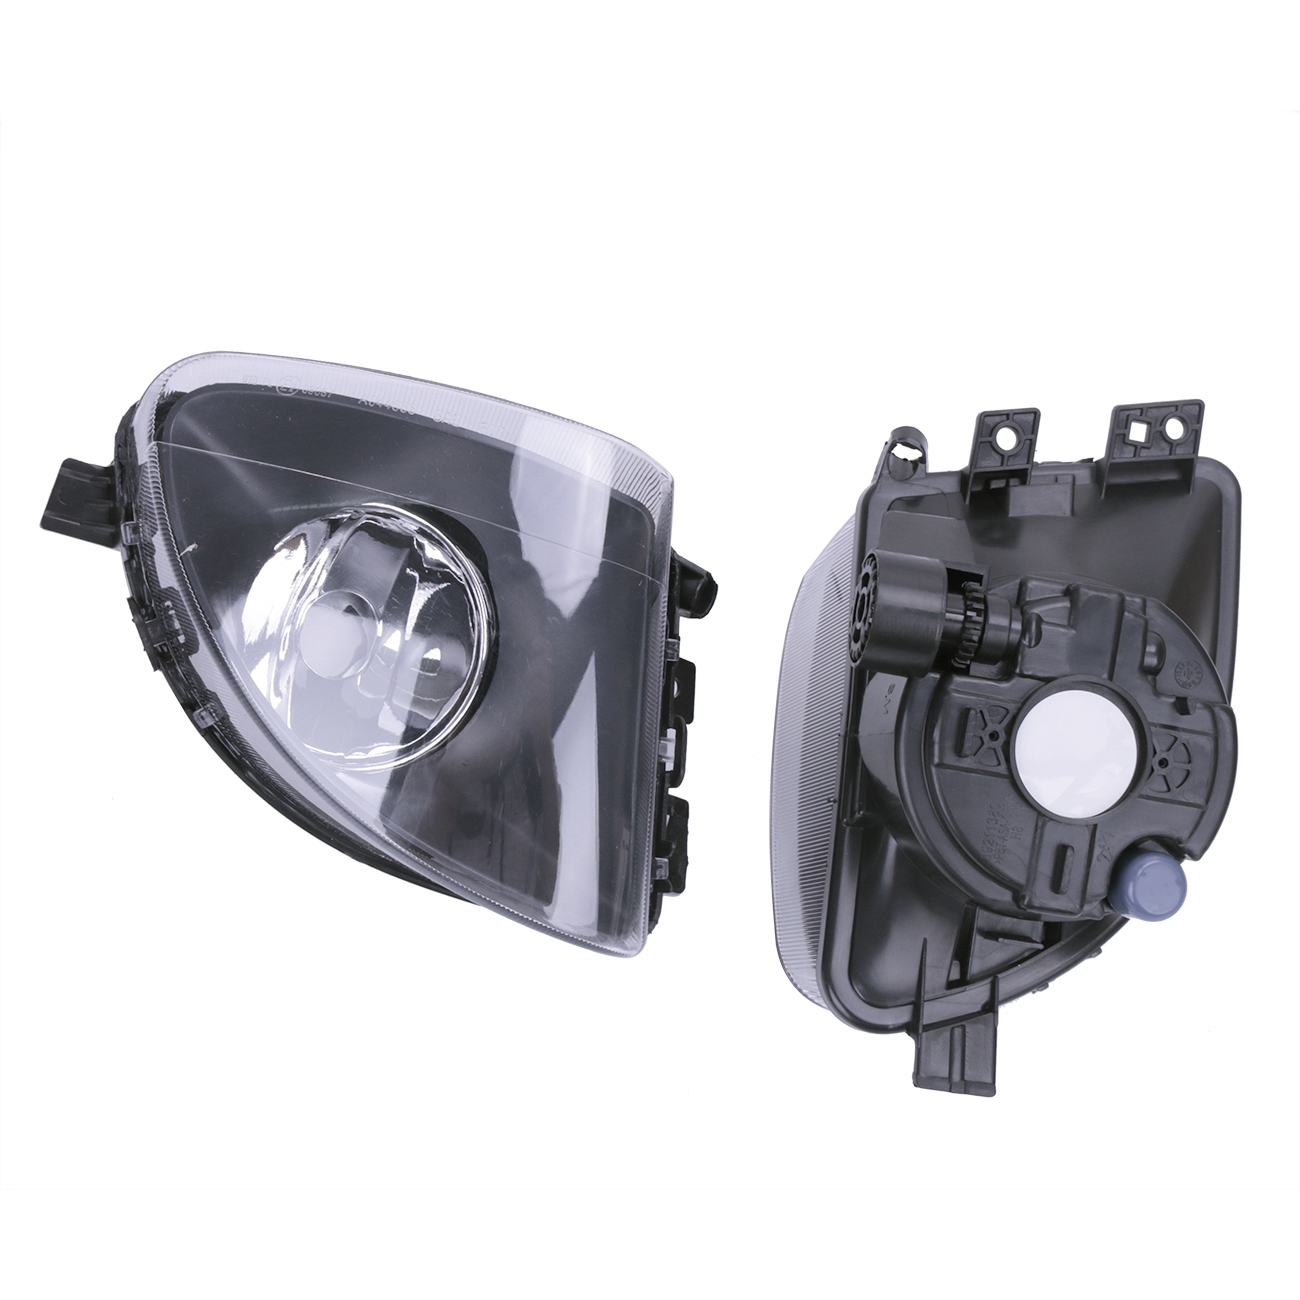 Driving Lamp Cover Fog light  For BMW F10 F11 520i 523i 528i 63177216885 63177216886 Without Bulb // cover coa2 11